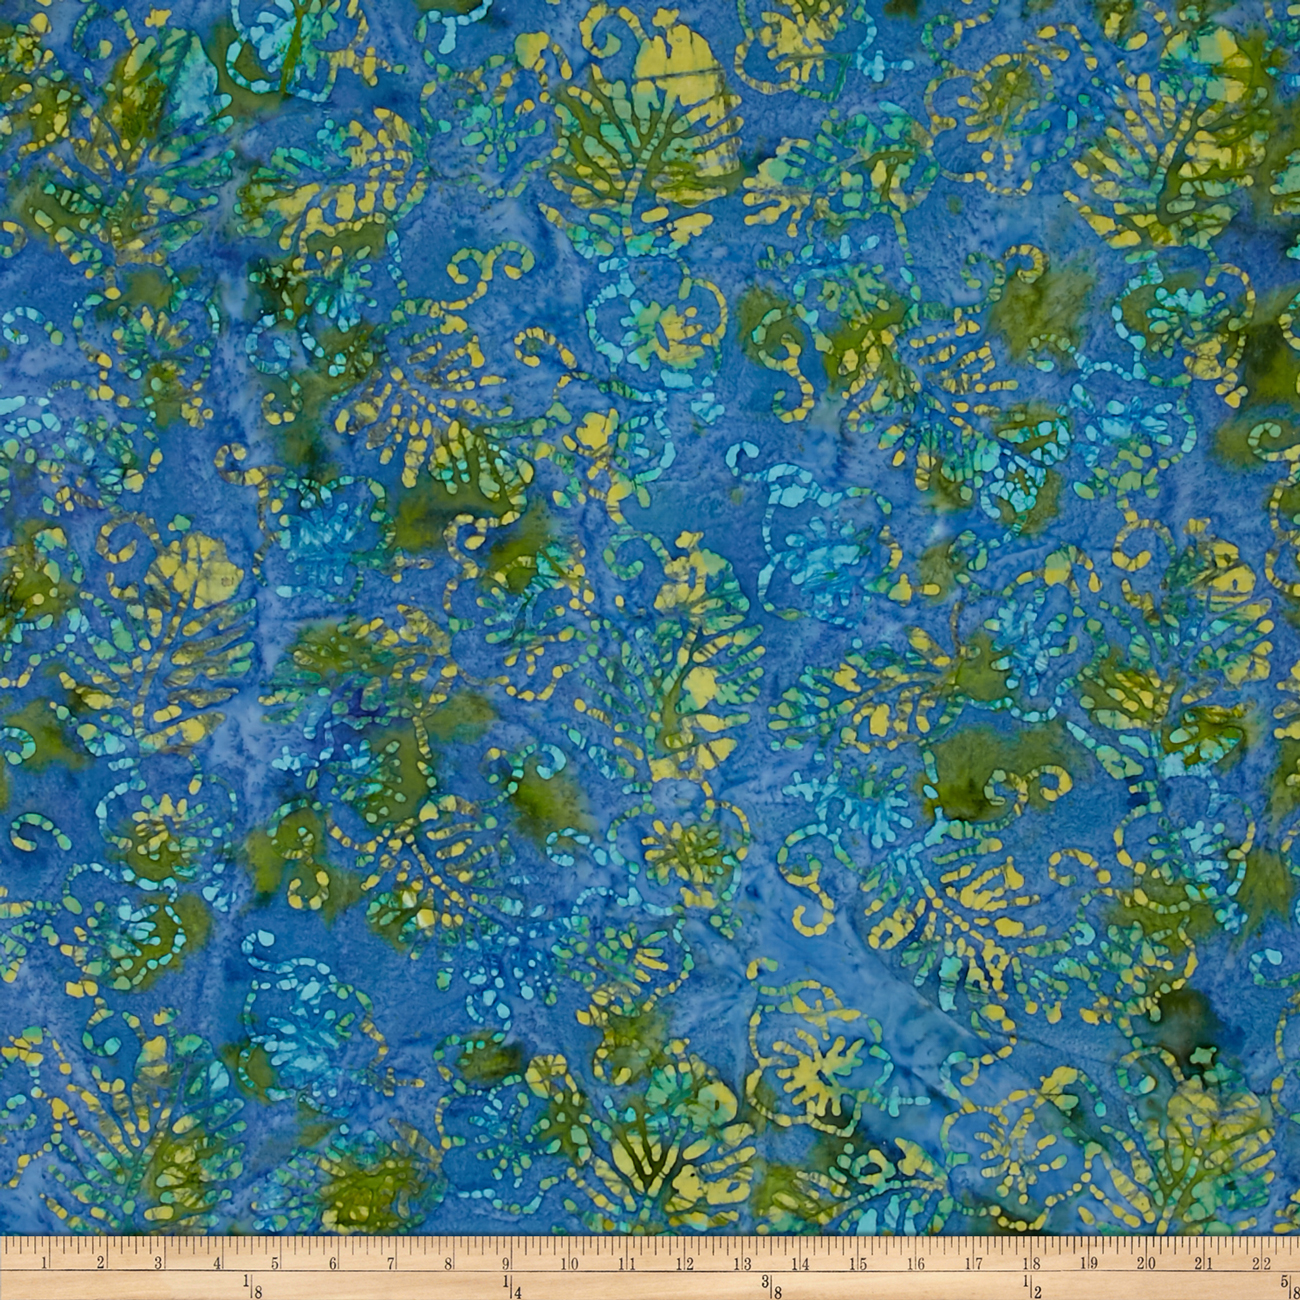 Indian Batik Jewel Box Leaf Blue/Green Fabric by Textile Creations in USA